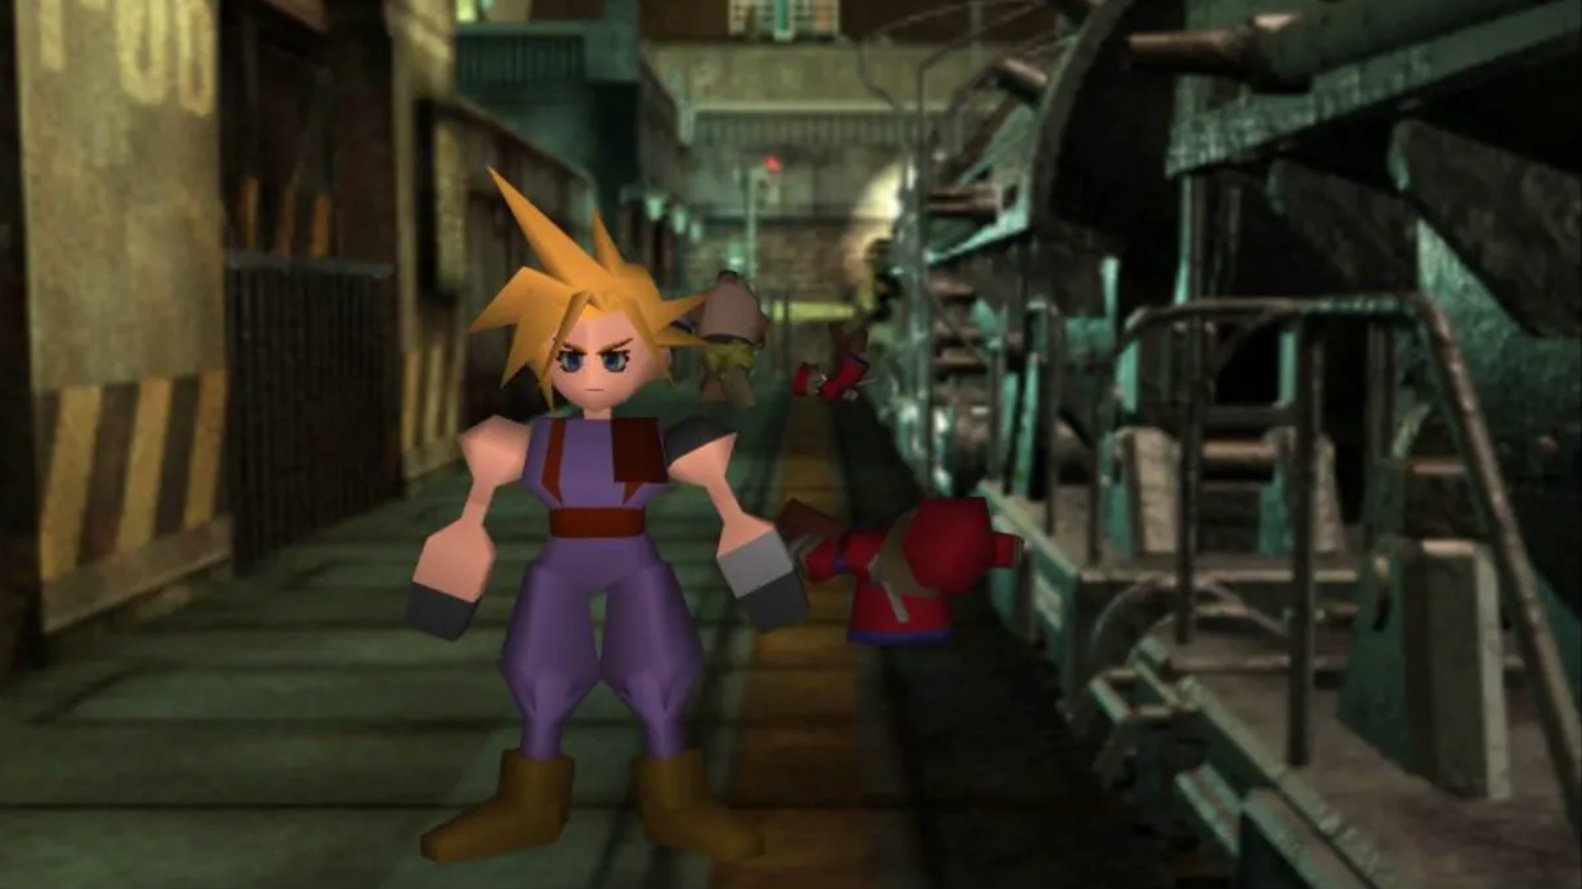 Looks Like Final Fantasy VII On Switch Has Reintroduced A Bug That